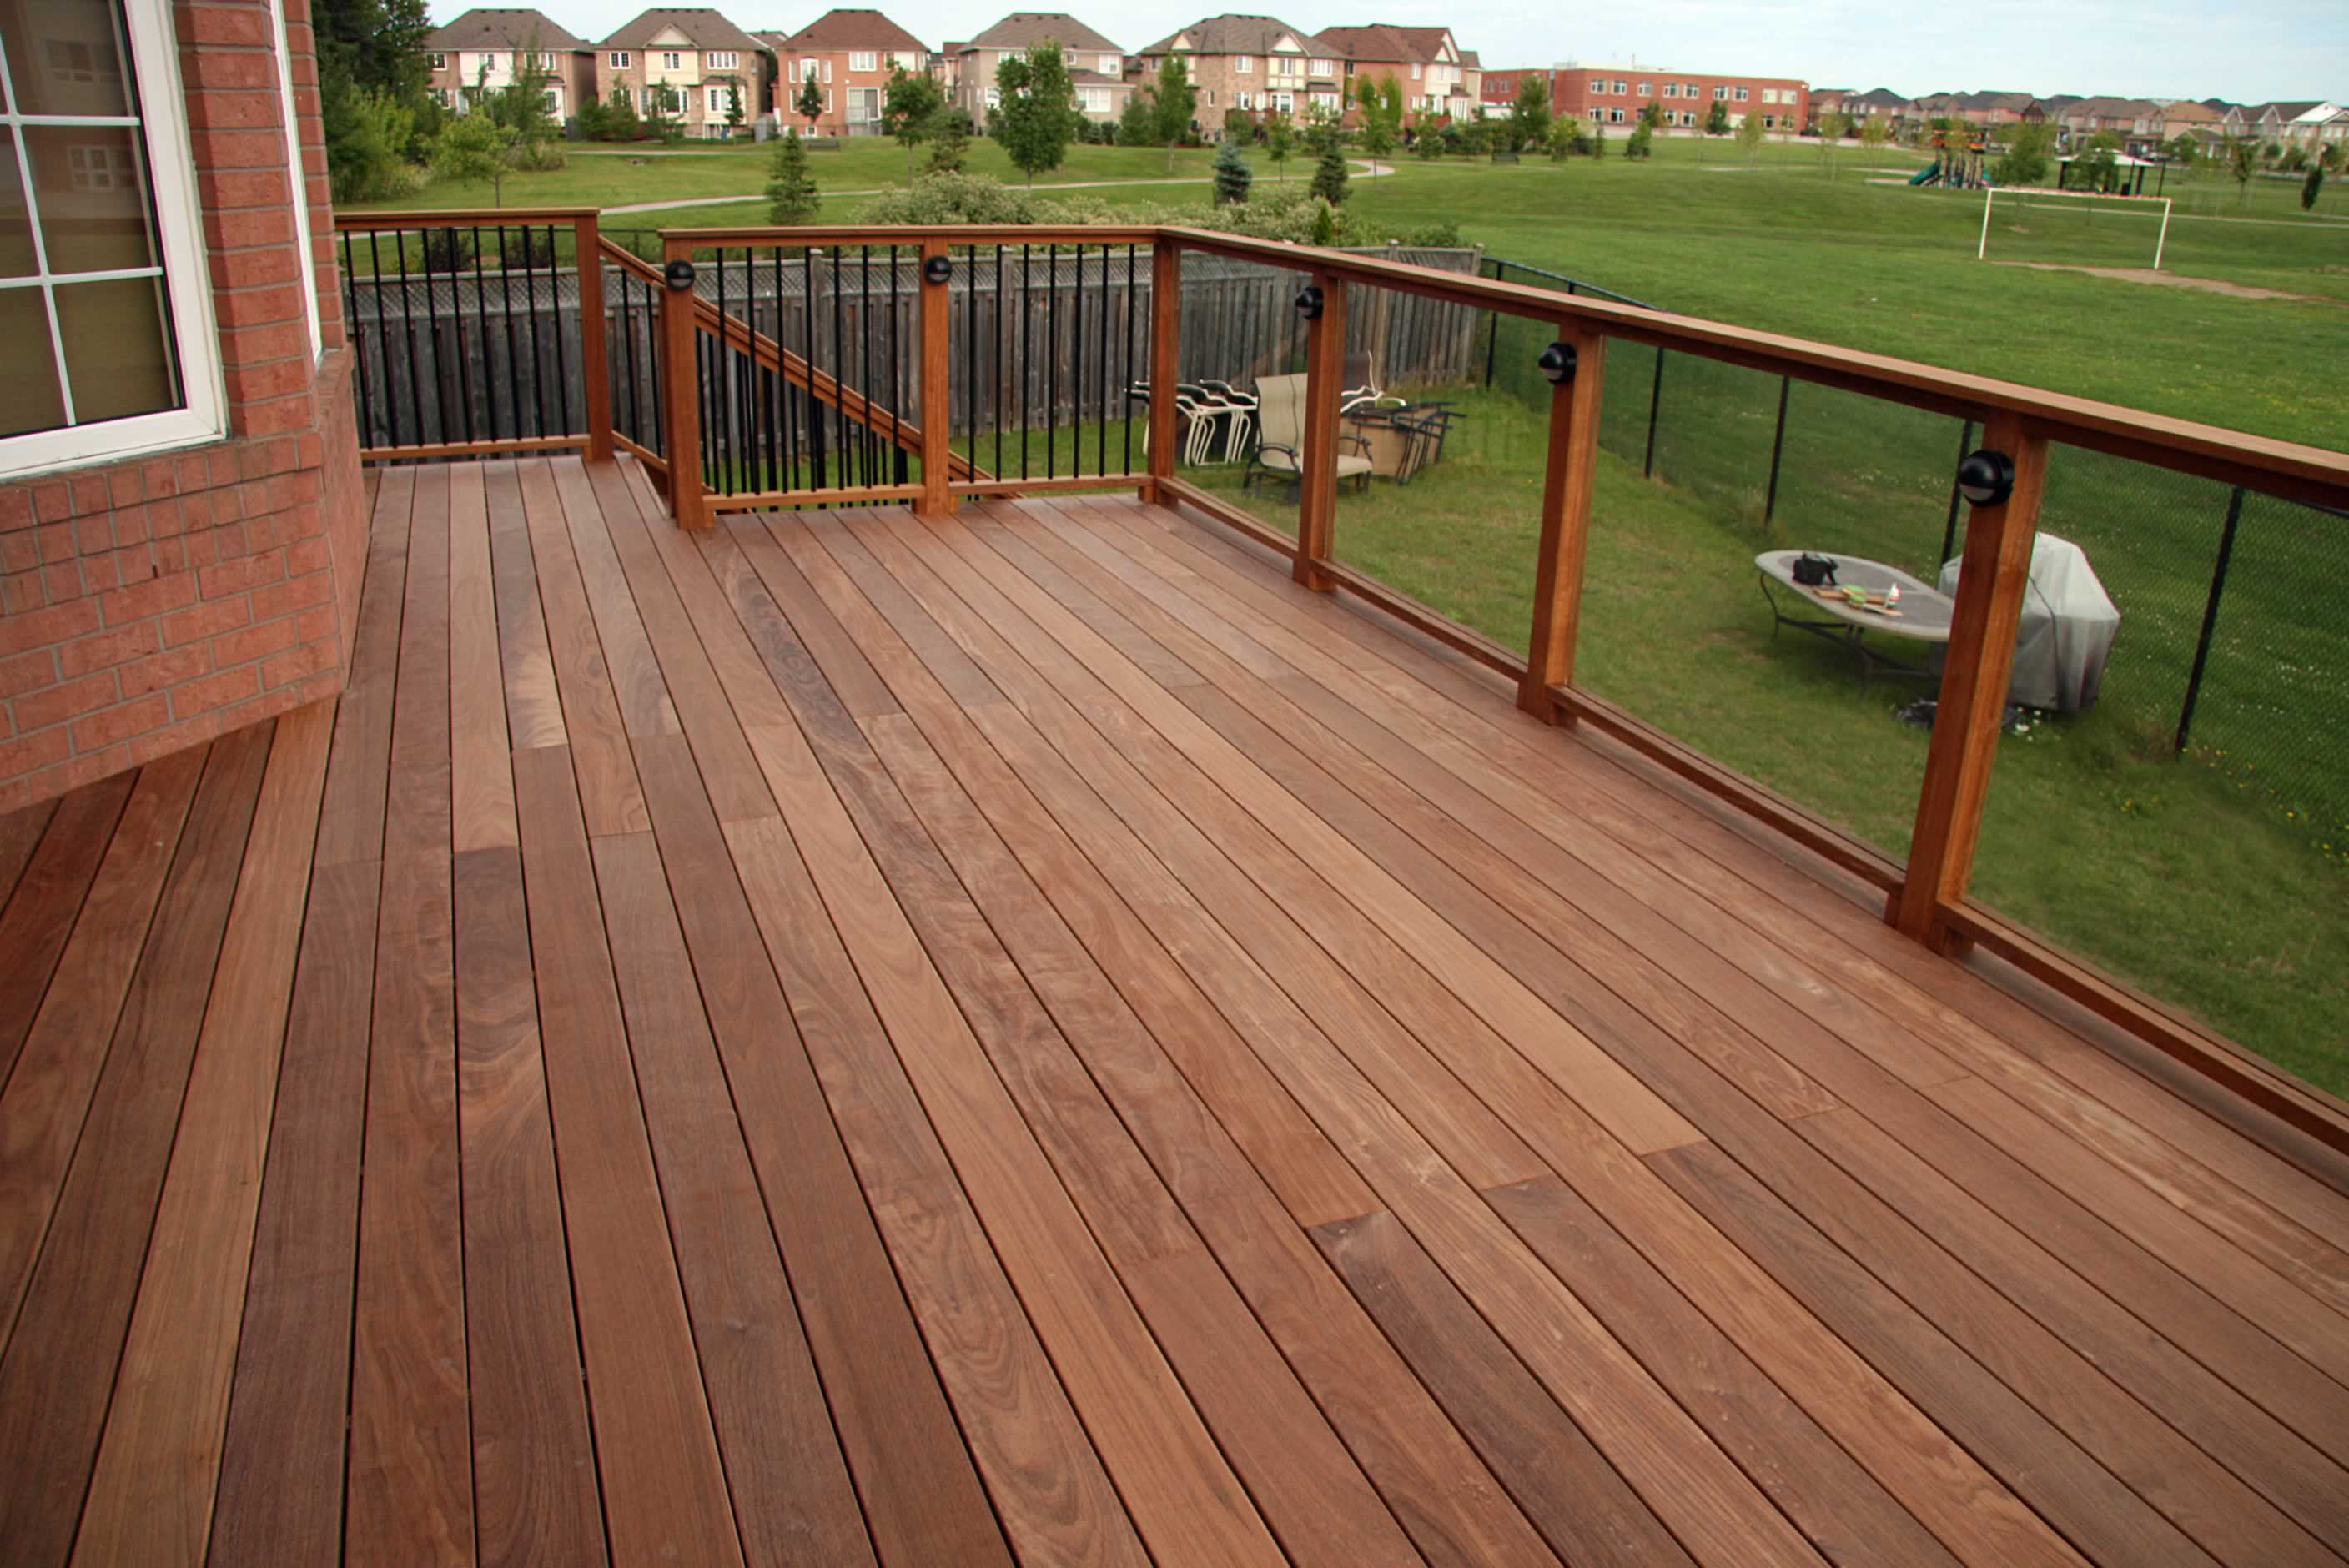 deck masters of canada deck building supplies 416 completed project examples